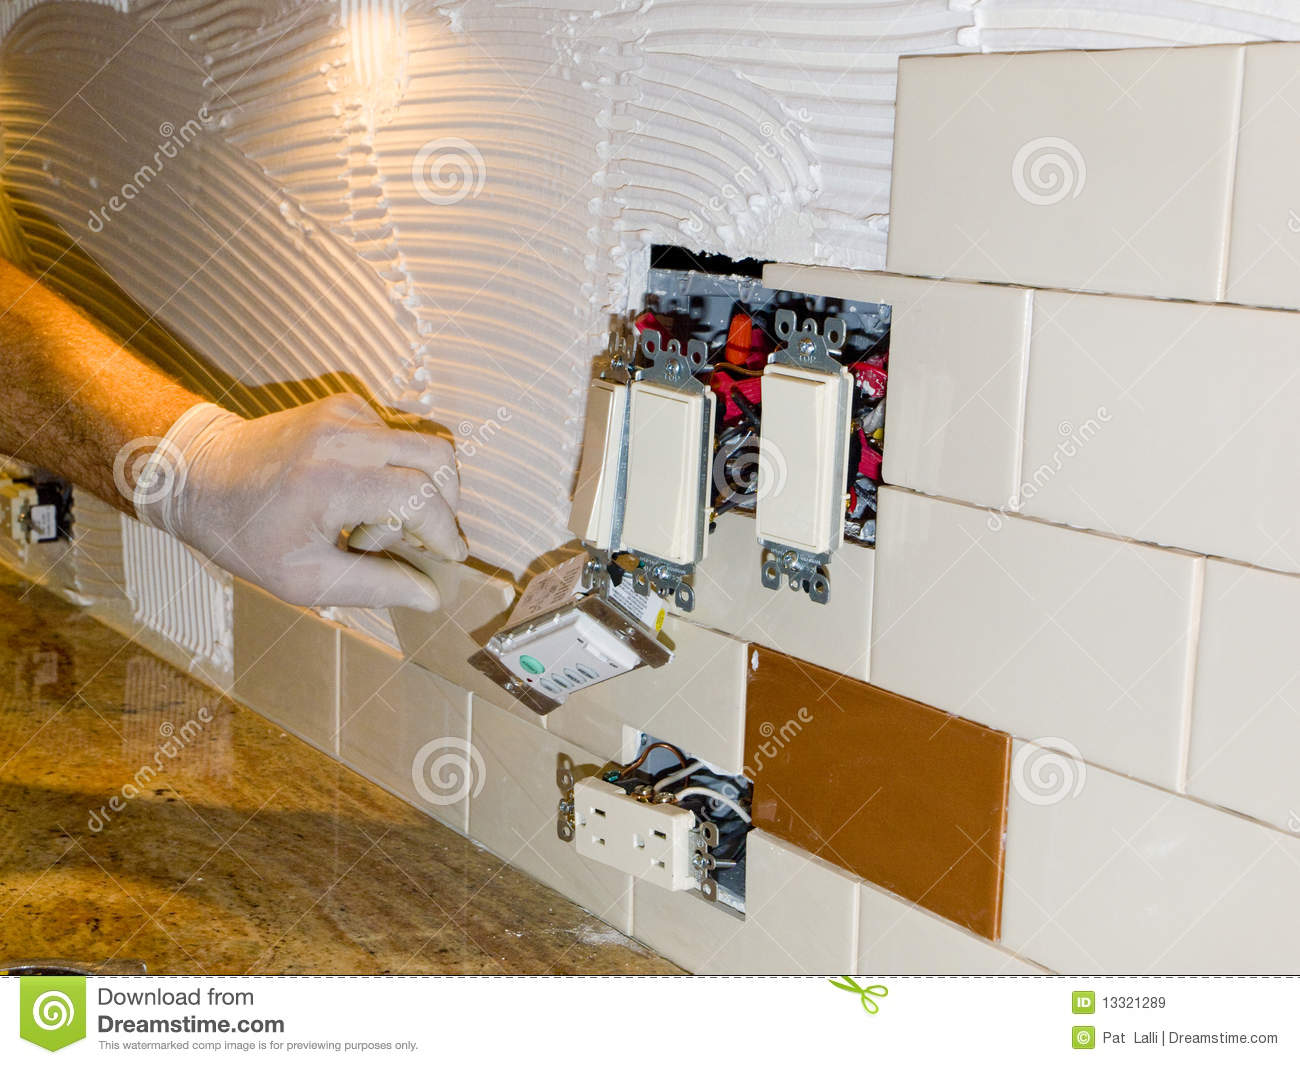 Ceramic tile installation on kitchen backsplash 10 royalty free stock images image 13321289 Backsplash tile installation